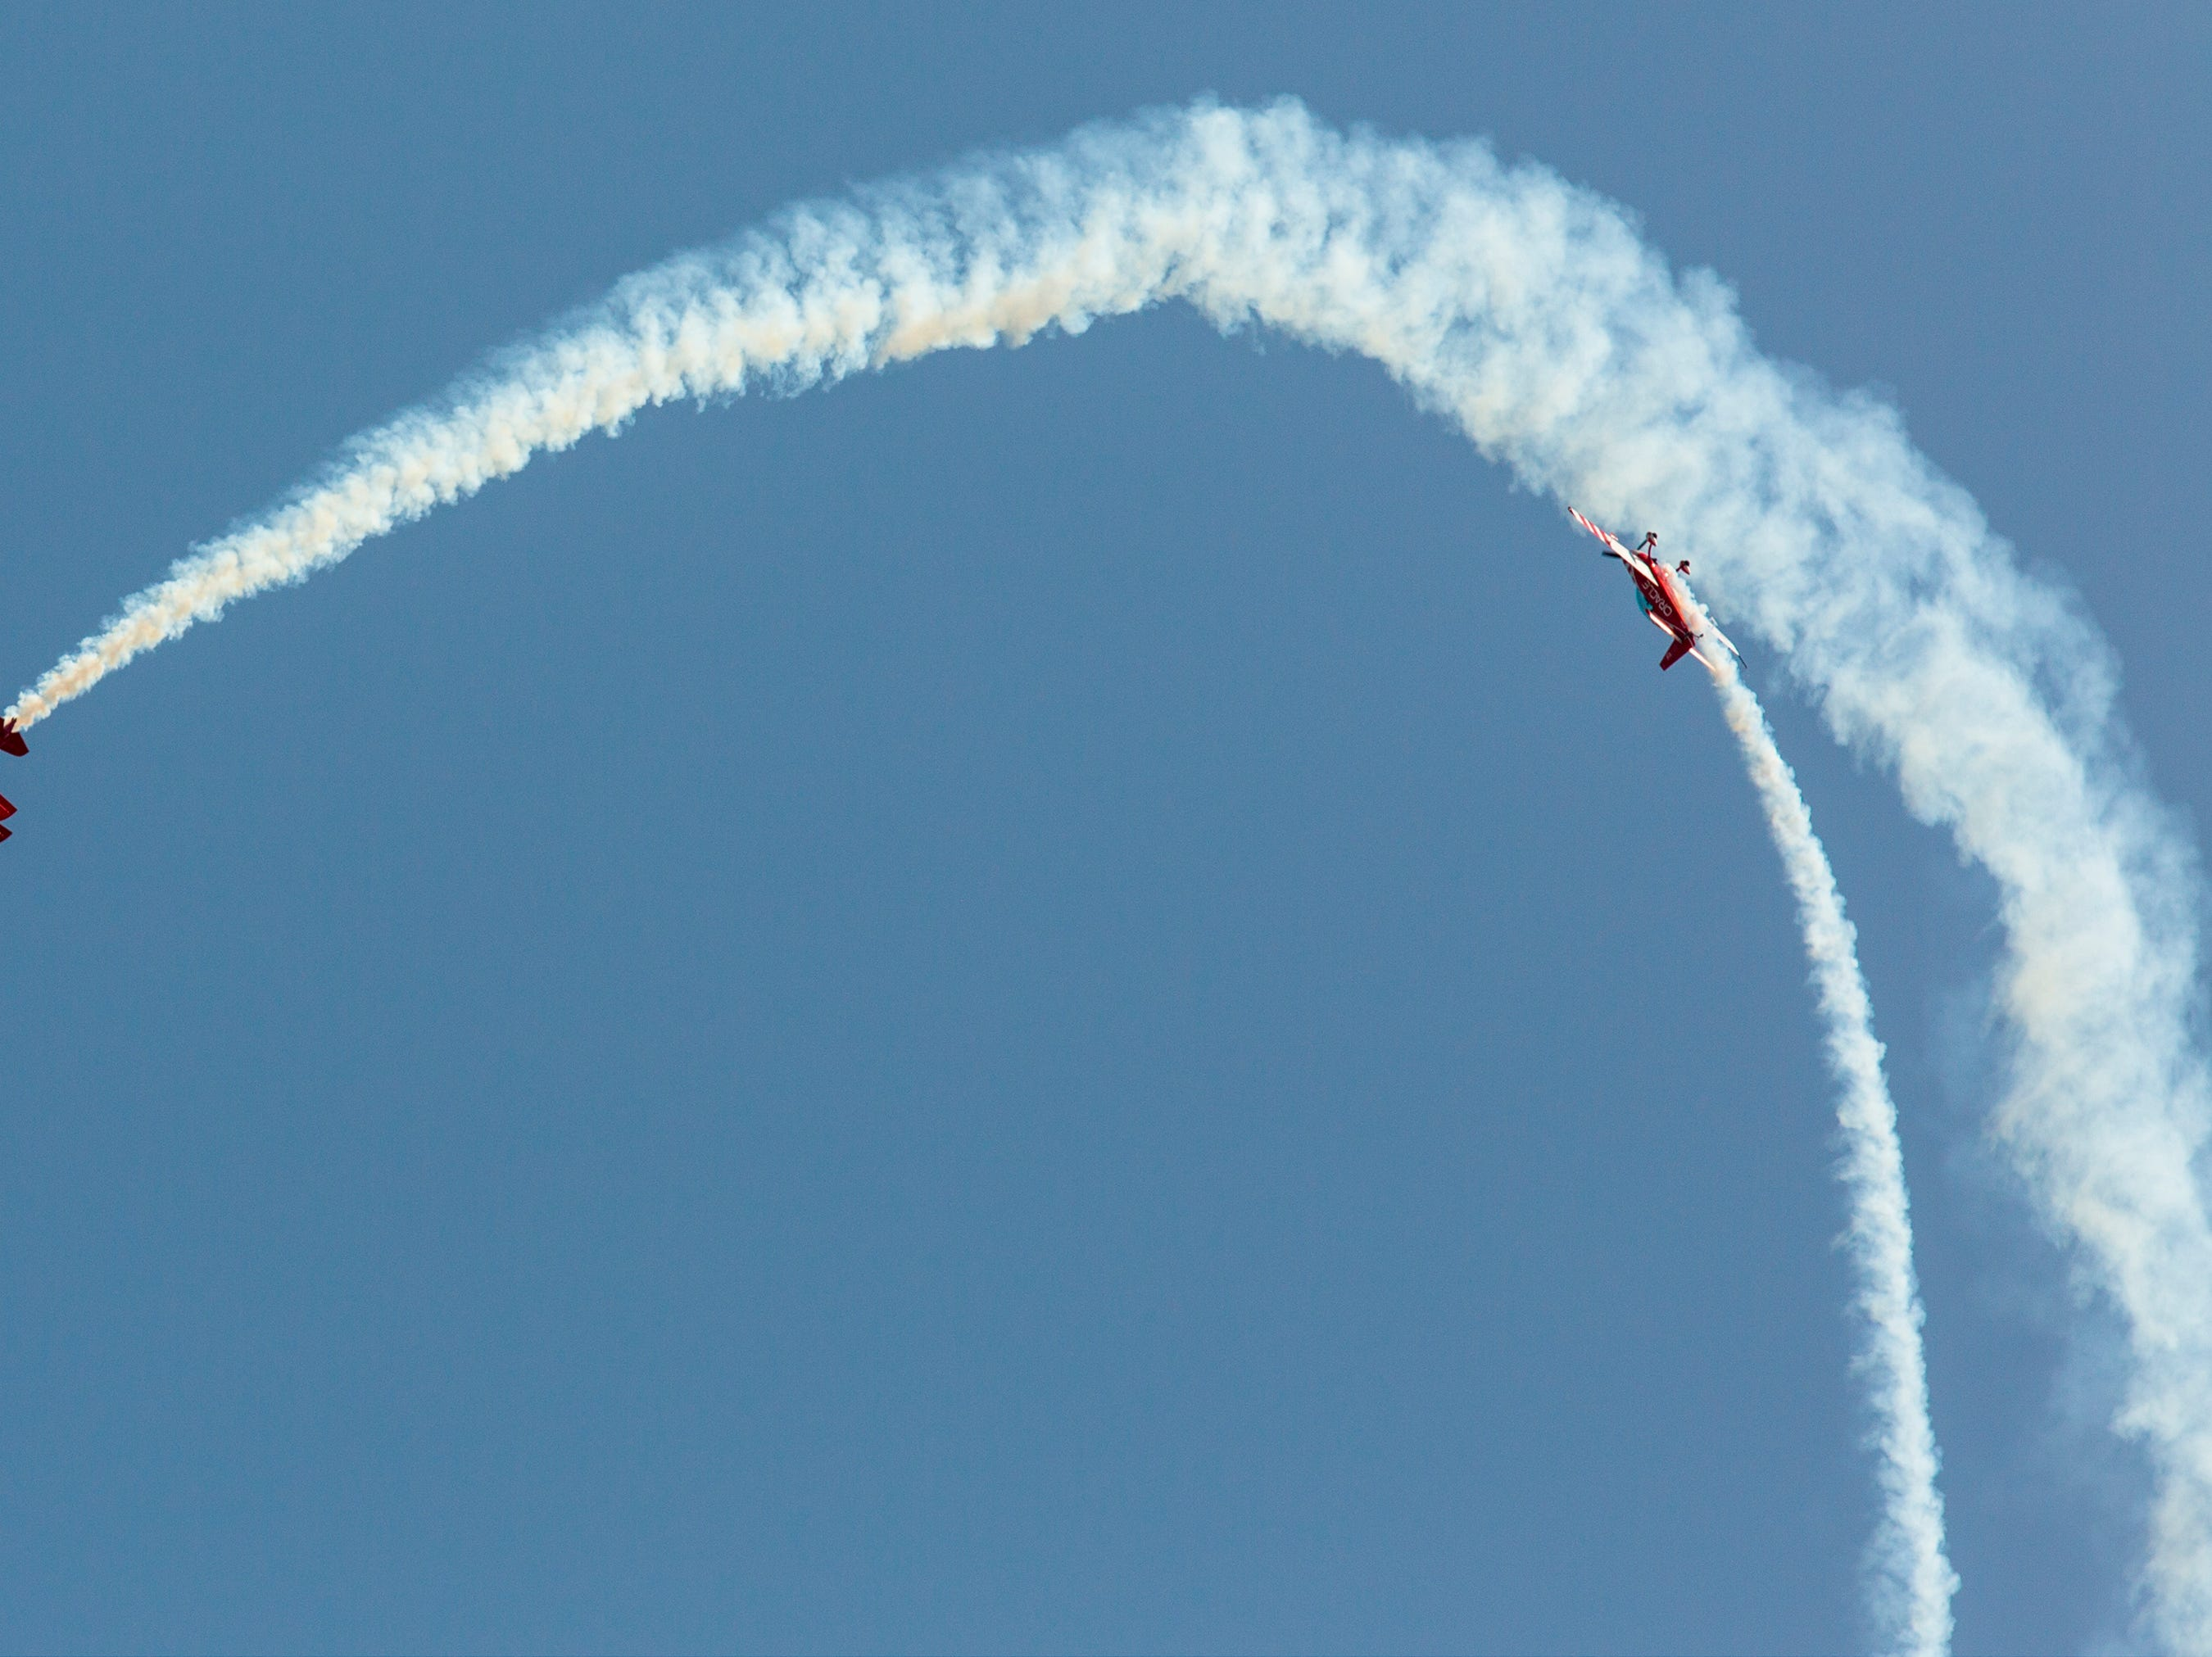 Sean D. Tucker and Jesse Panzer of Team Oracle perform stunts in the air during the California International Airshow Salinas at the Salinas Airport on March 23, 2019. (Photo by David Royal)